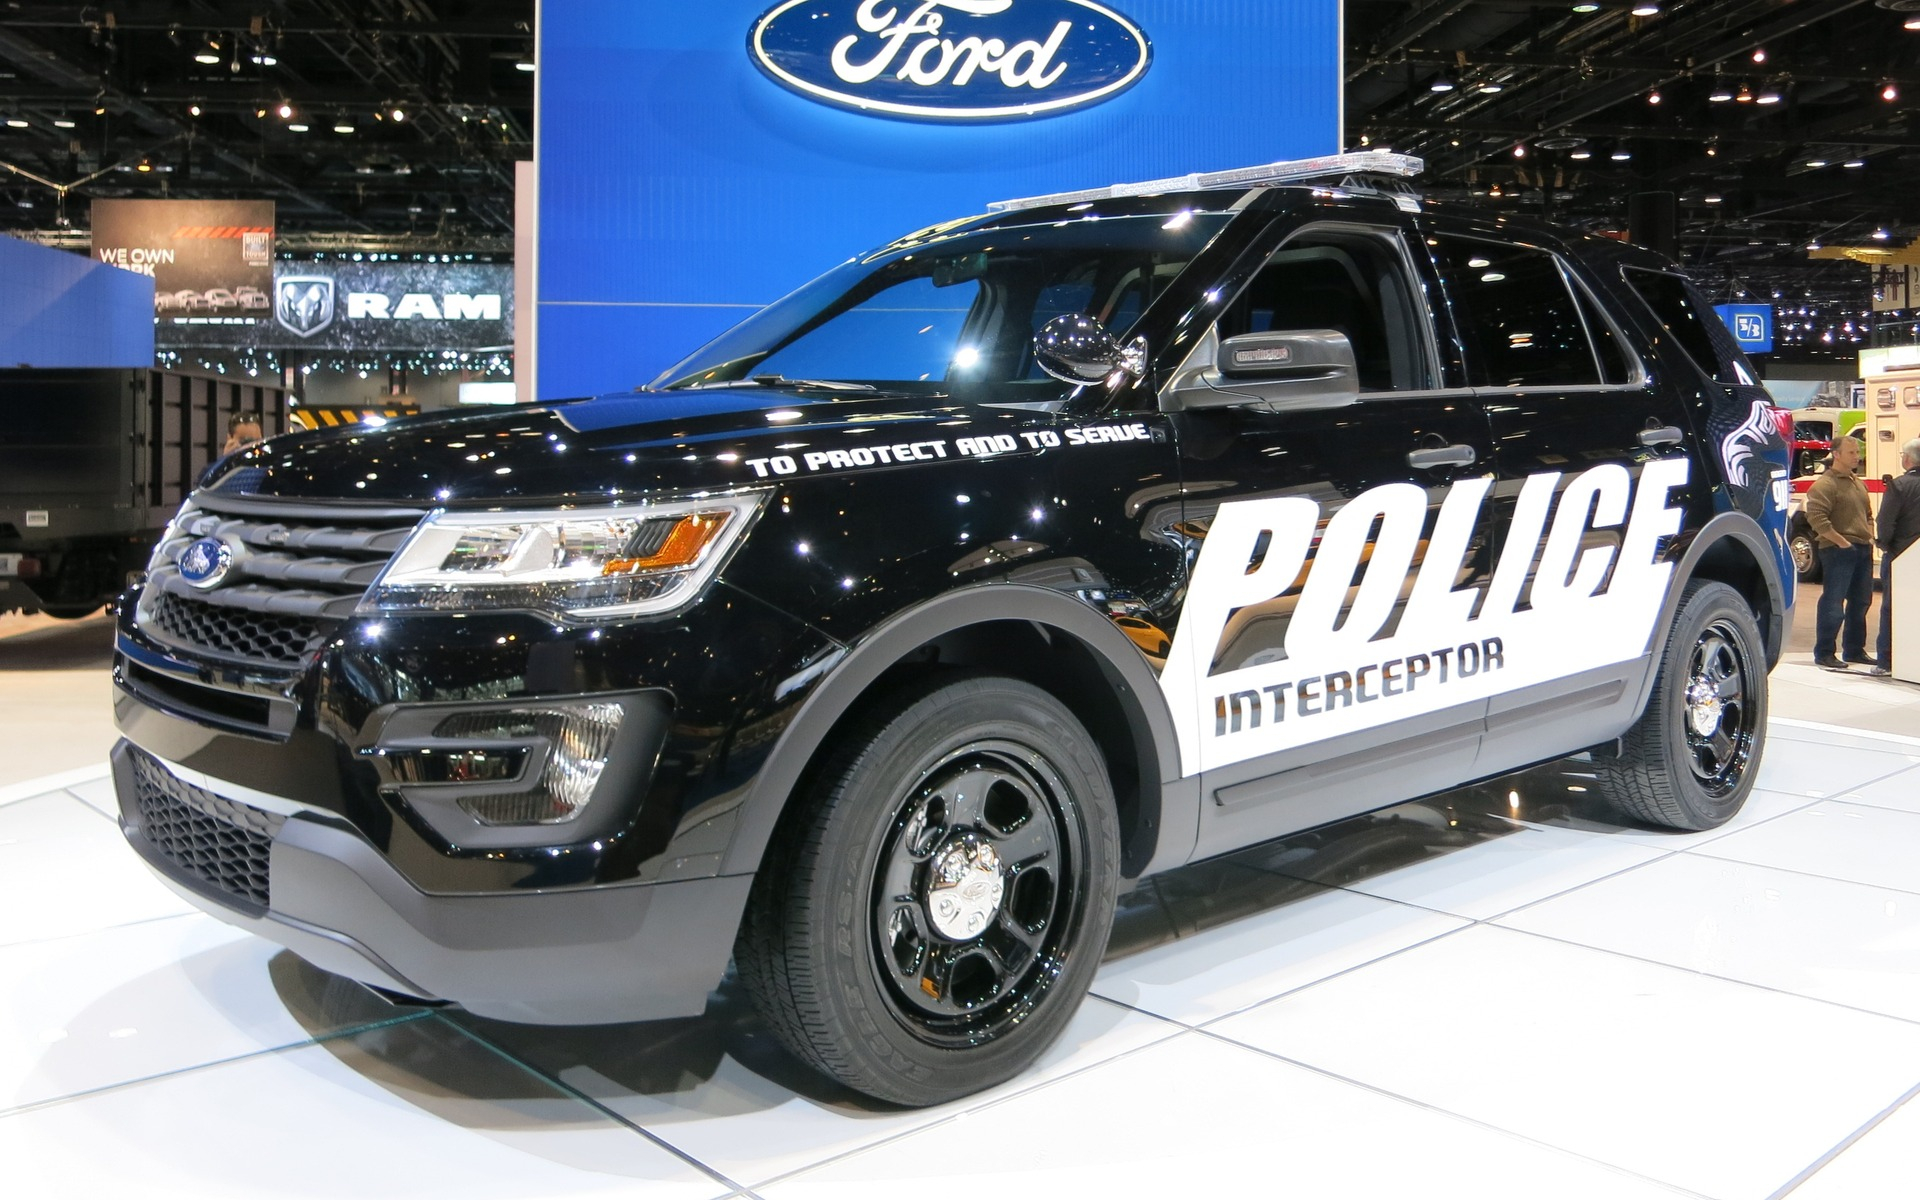 chicago voici le ford explorer interceptor 2016 ford. Black Bedroom Furniture Sets. Home Design Ideas